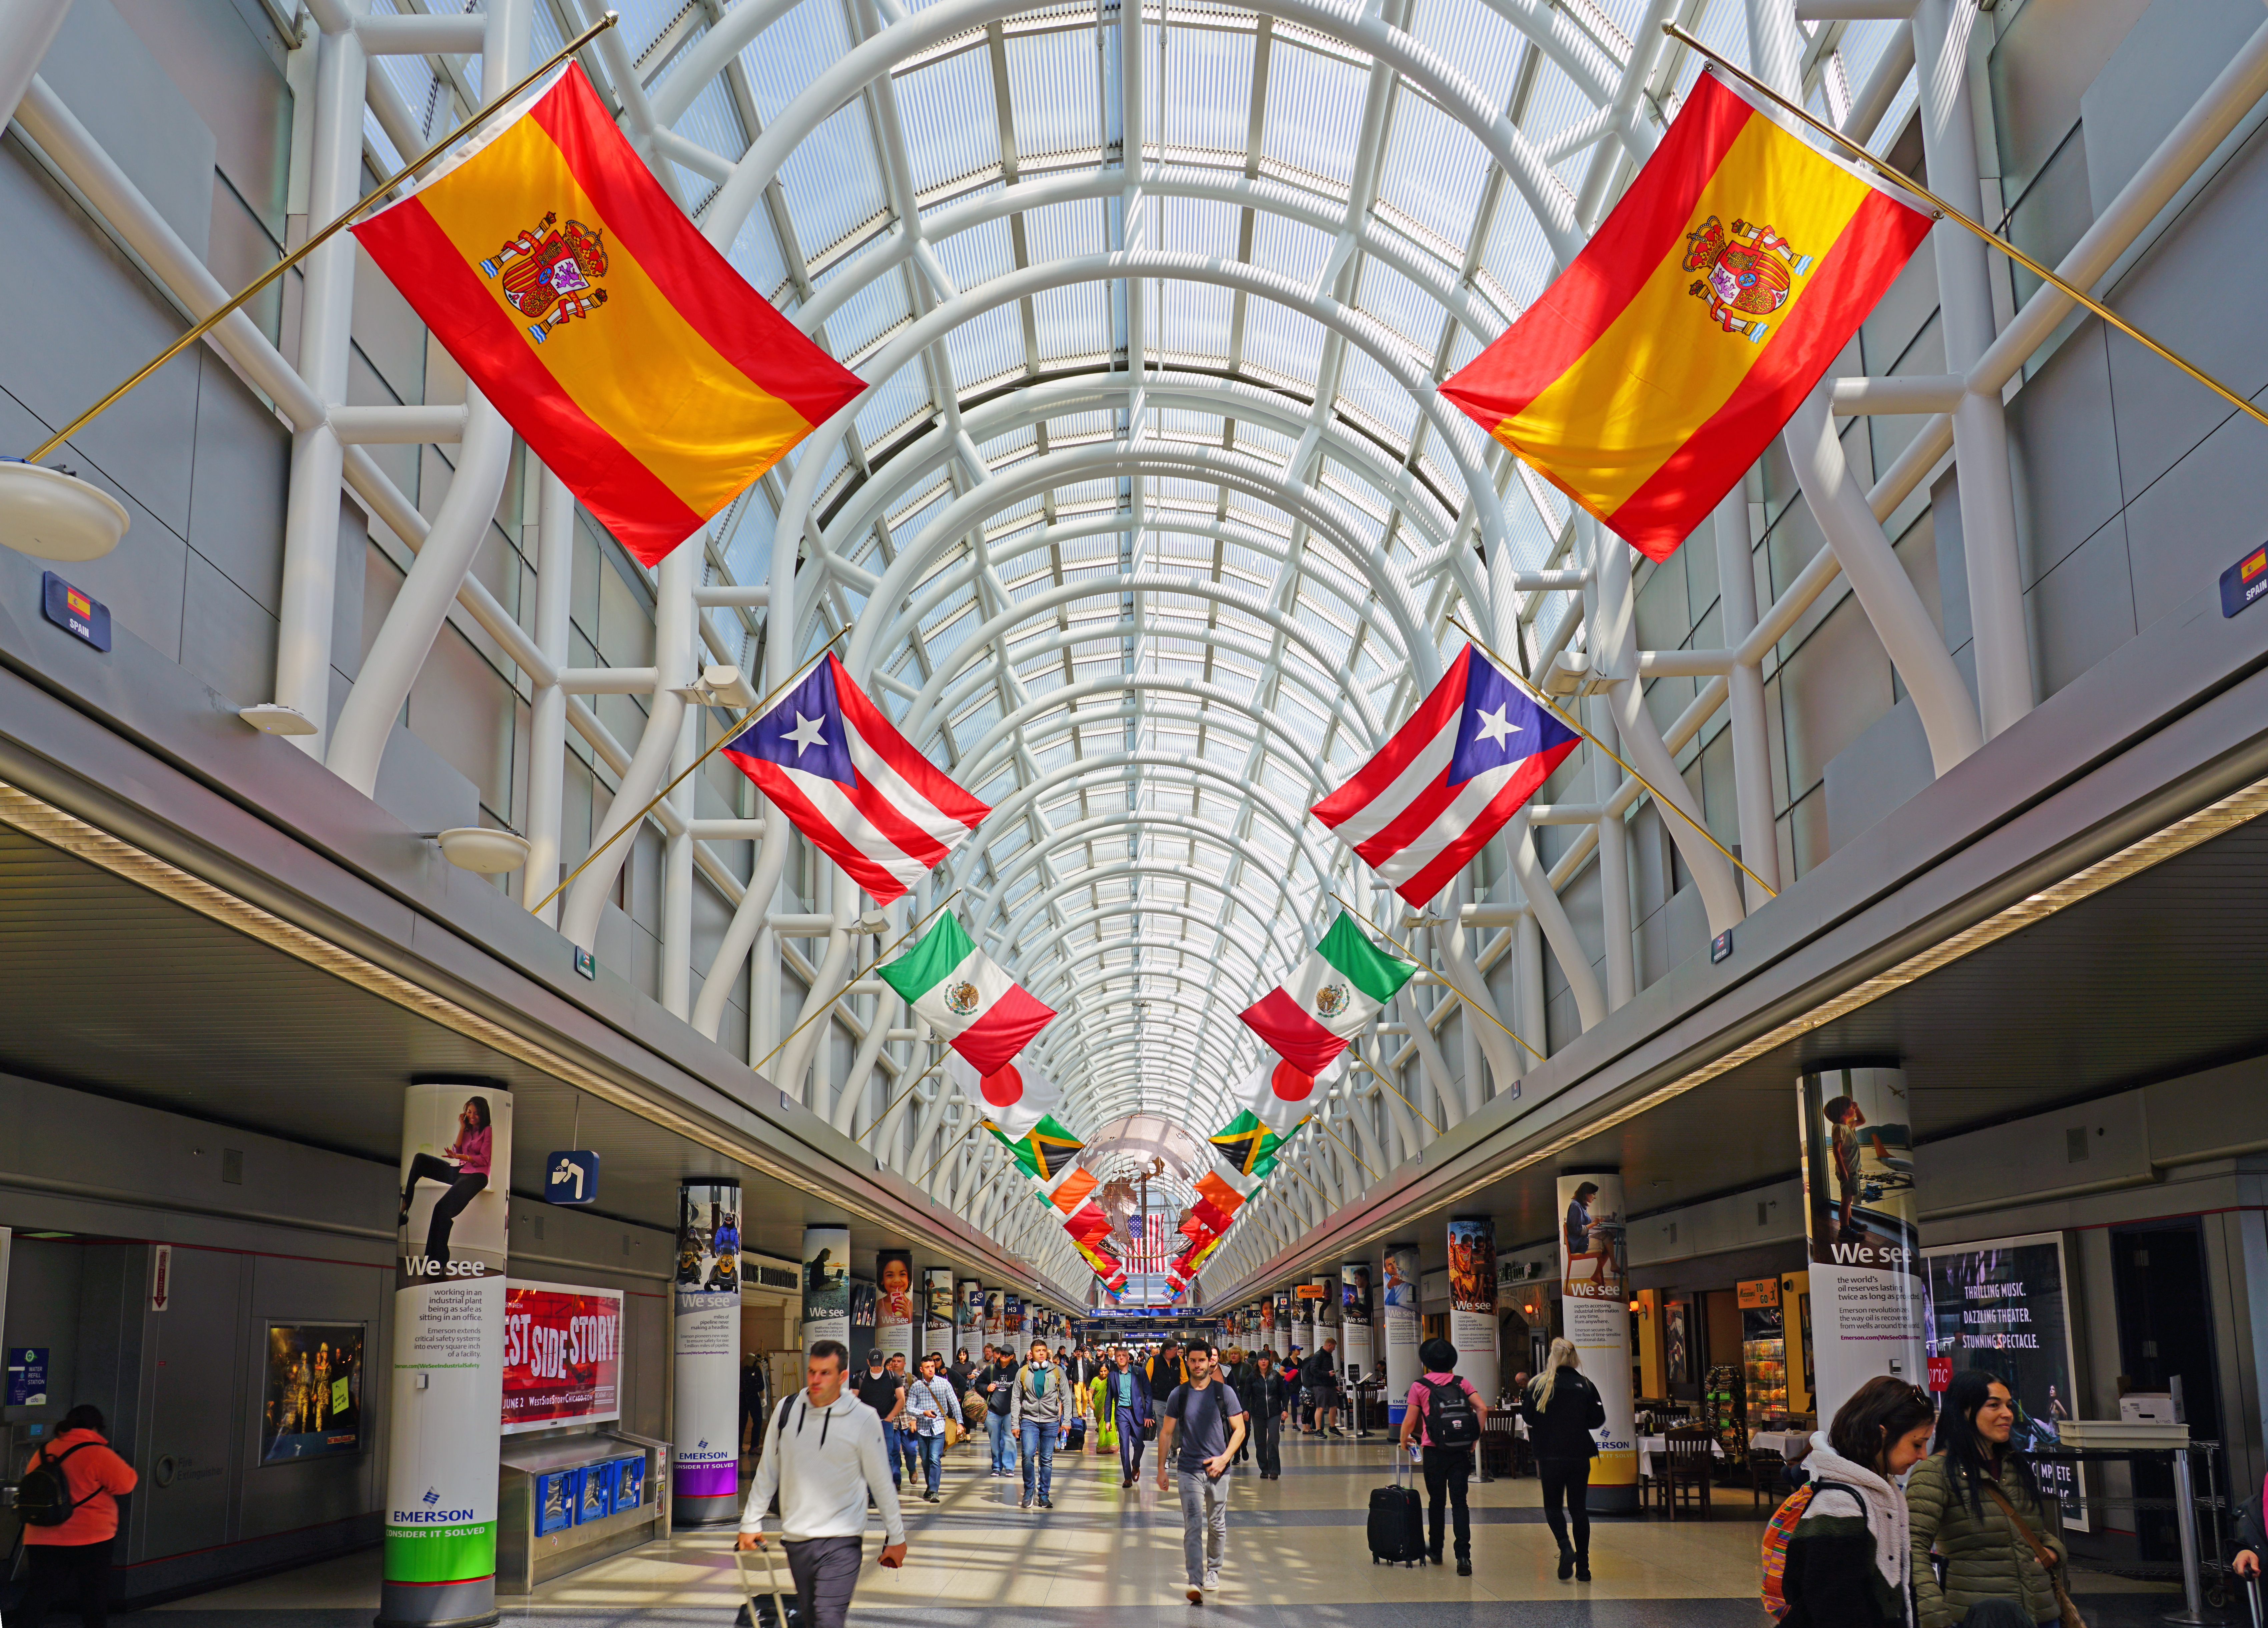 A concourse inside O'Hare International Airport decorated with foreign flags.